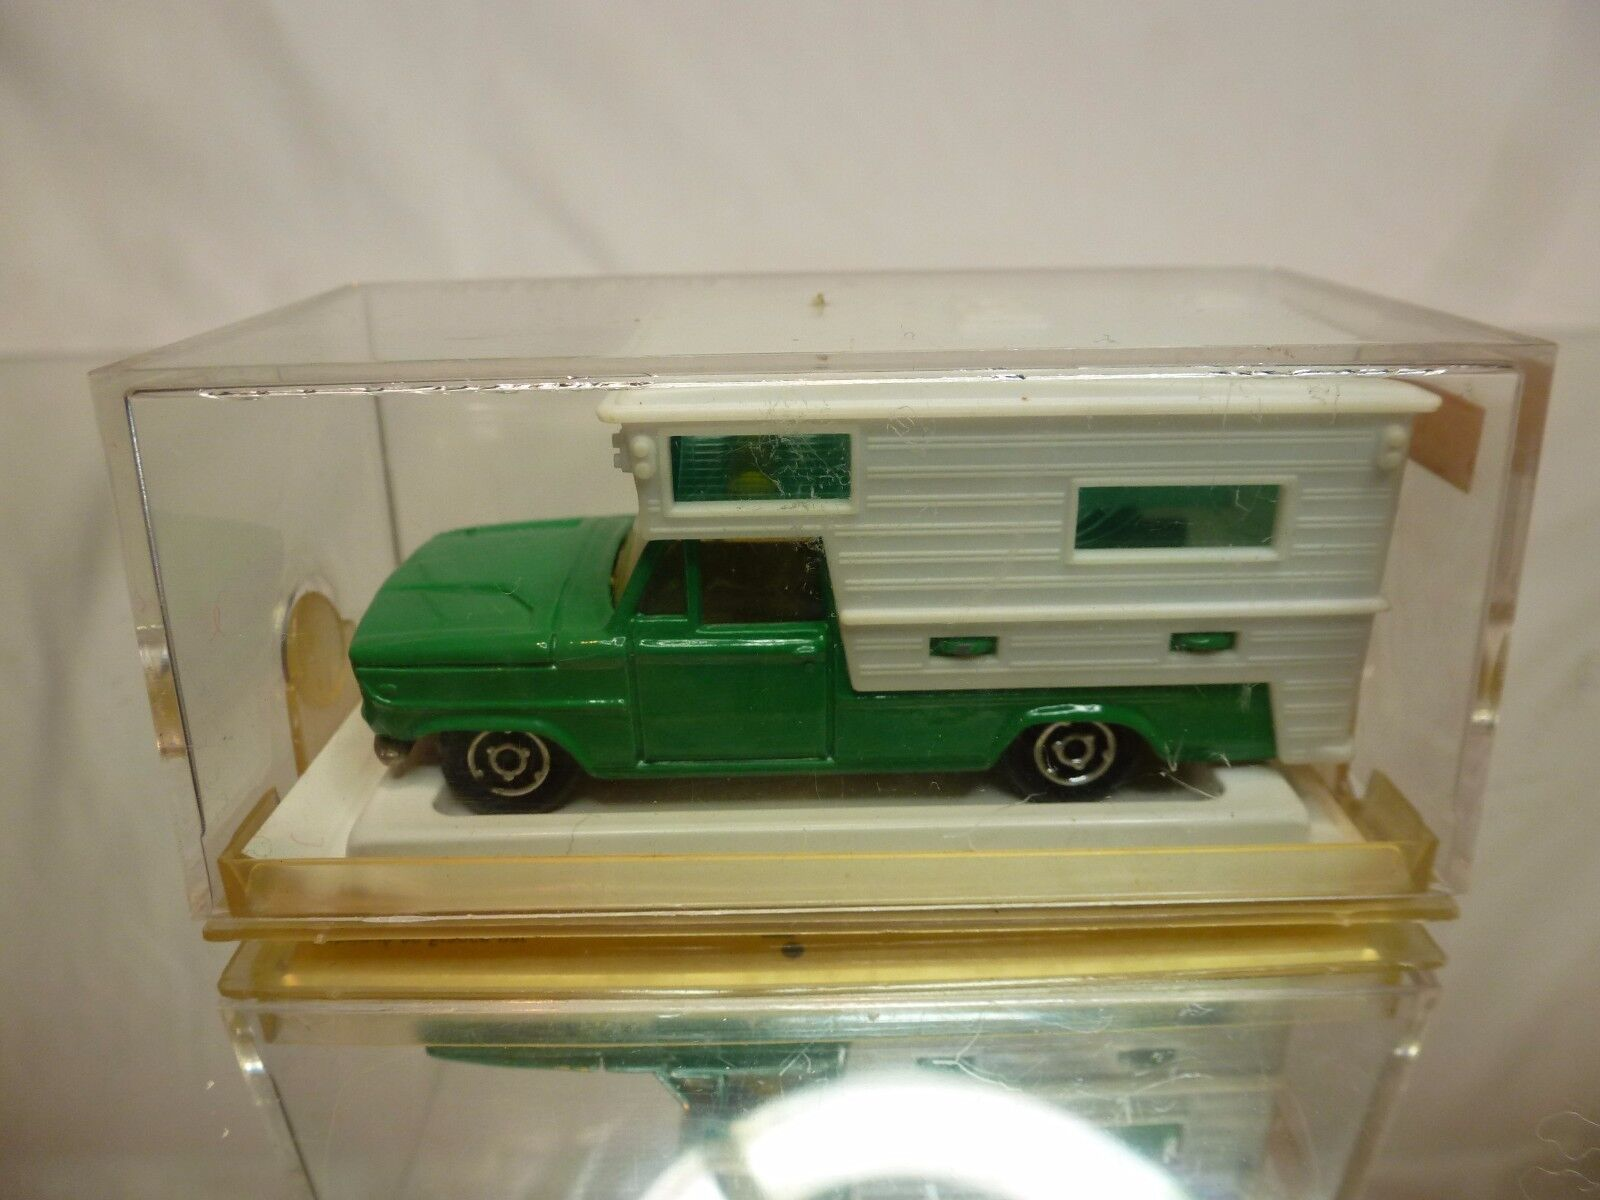 MAJORETTE 209 CAMPING CAR - verde + bianca  1:80 - GOOD CONDITION IN BOX